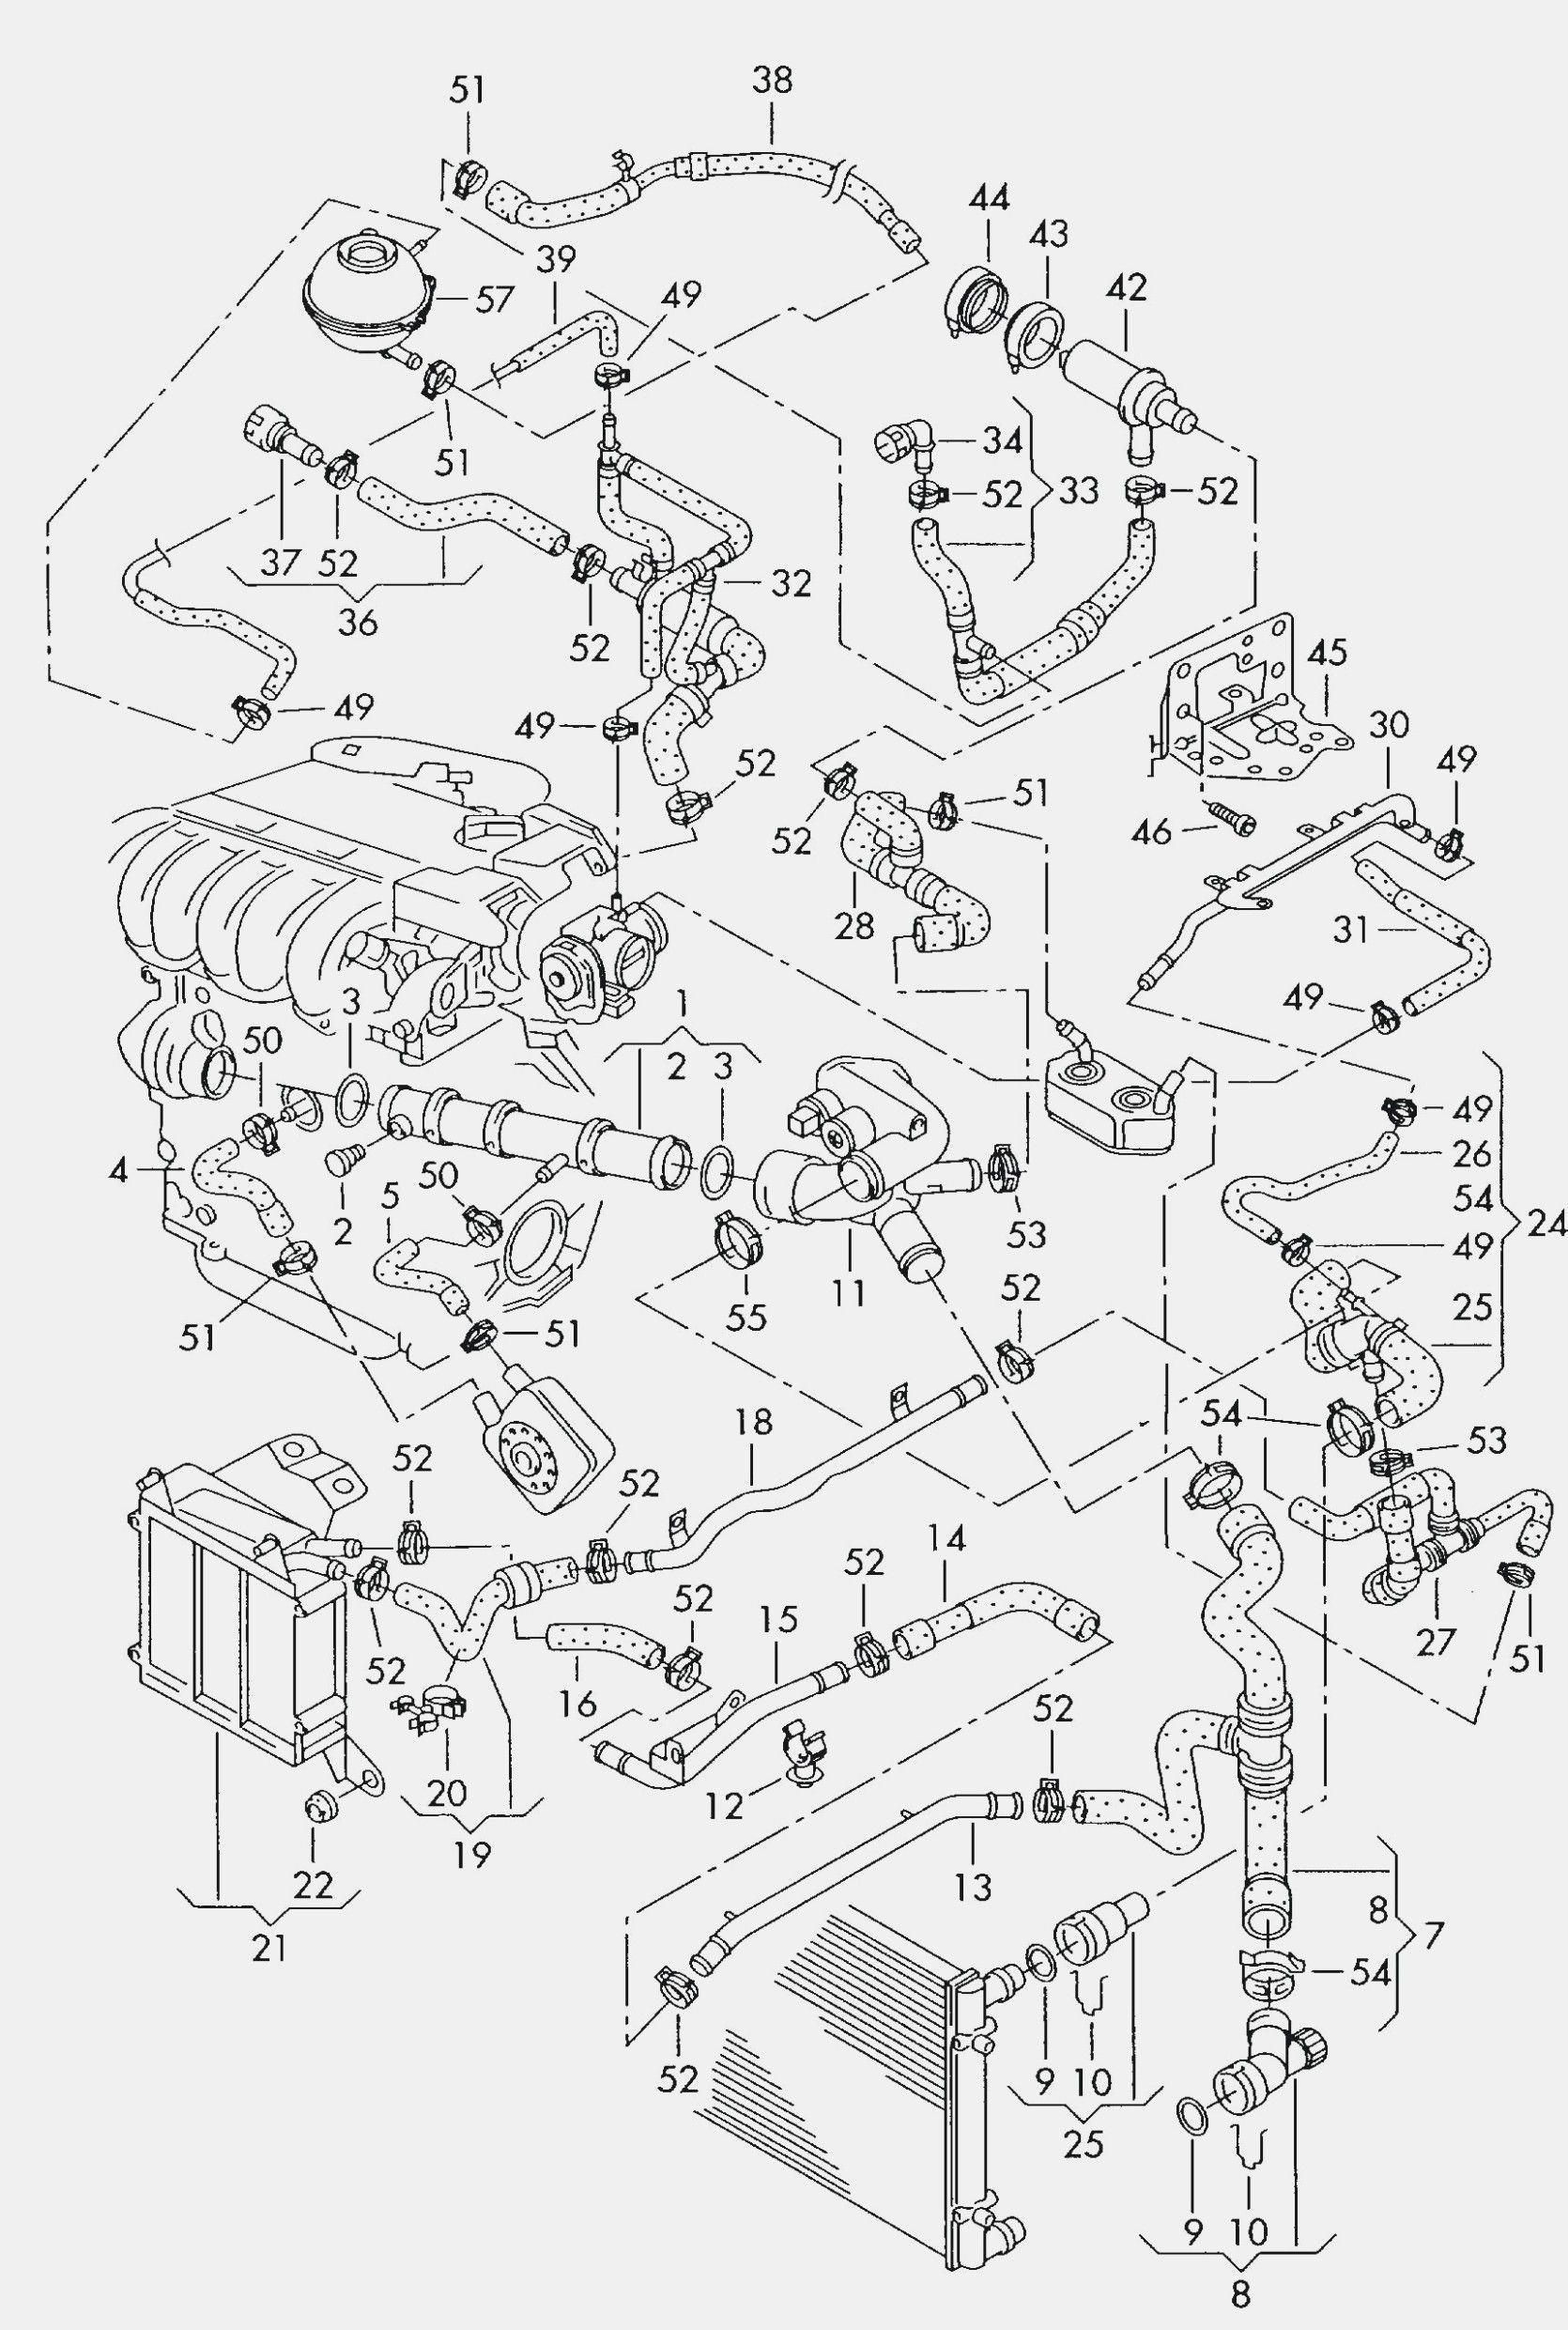 Diagram Diagramsample Diagramtemplate Wiringdiagram Diagramchart Worksheet Worksheettemplate Check More At Https Morningcult Vw Up Vr6 Engine Vw Jetta